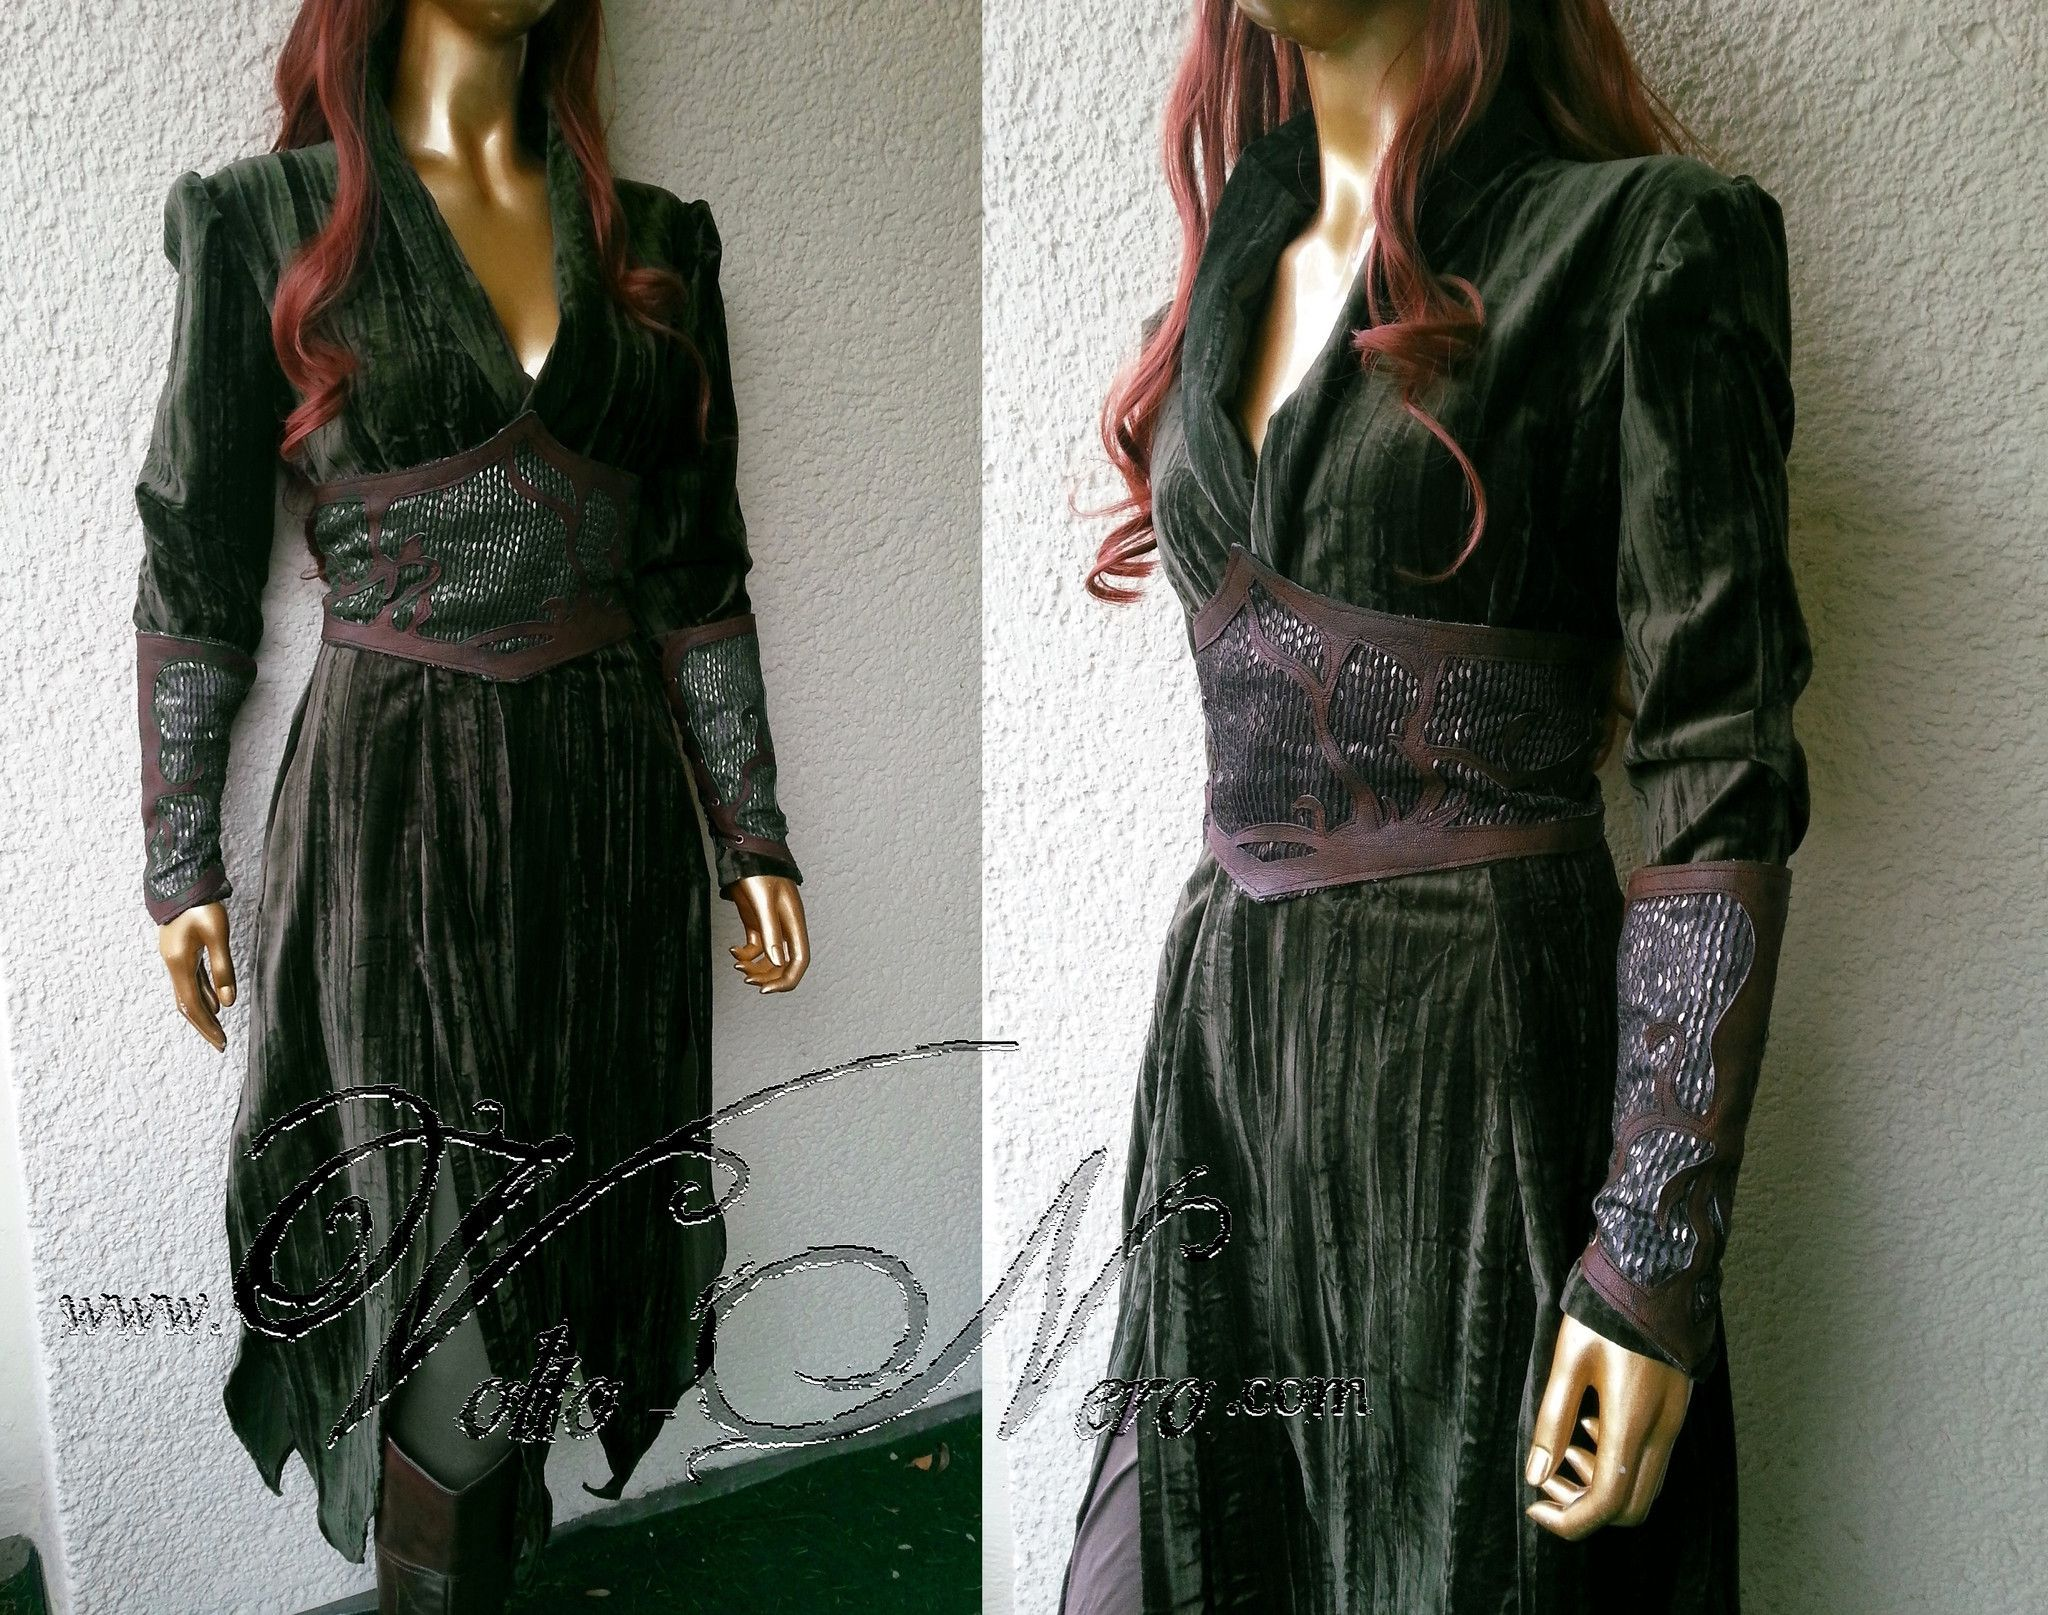 Tauriel Costume - The Hobbit & Tauriel Costume - The Hobbit Elven Dress Lord of the Rings | Tauriel ...